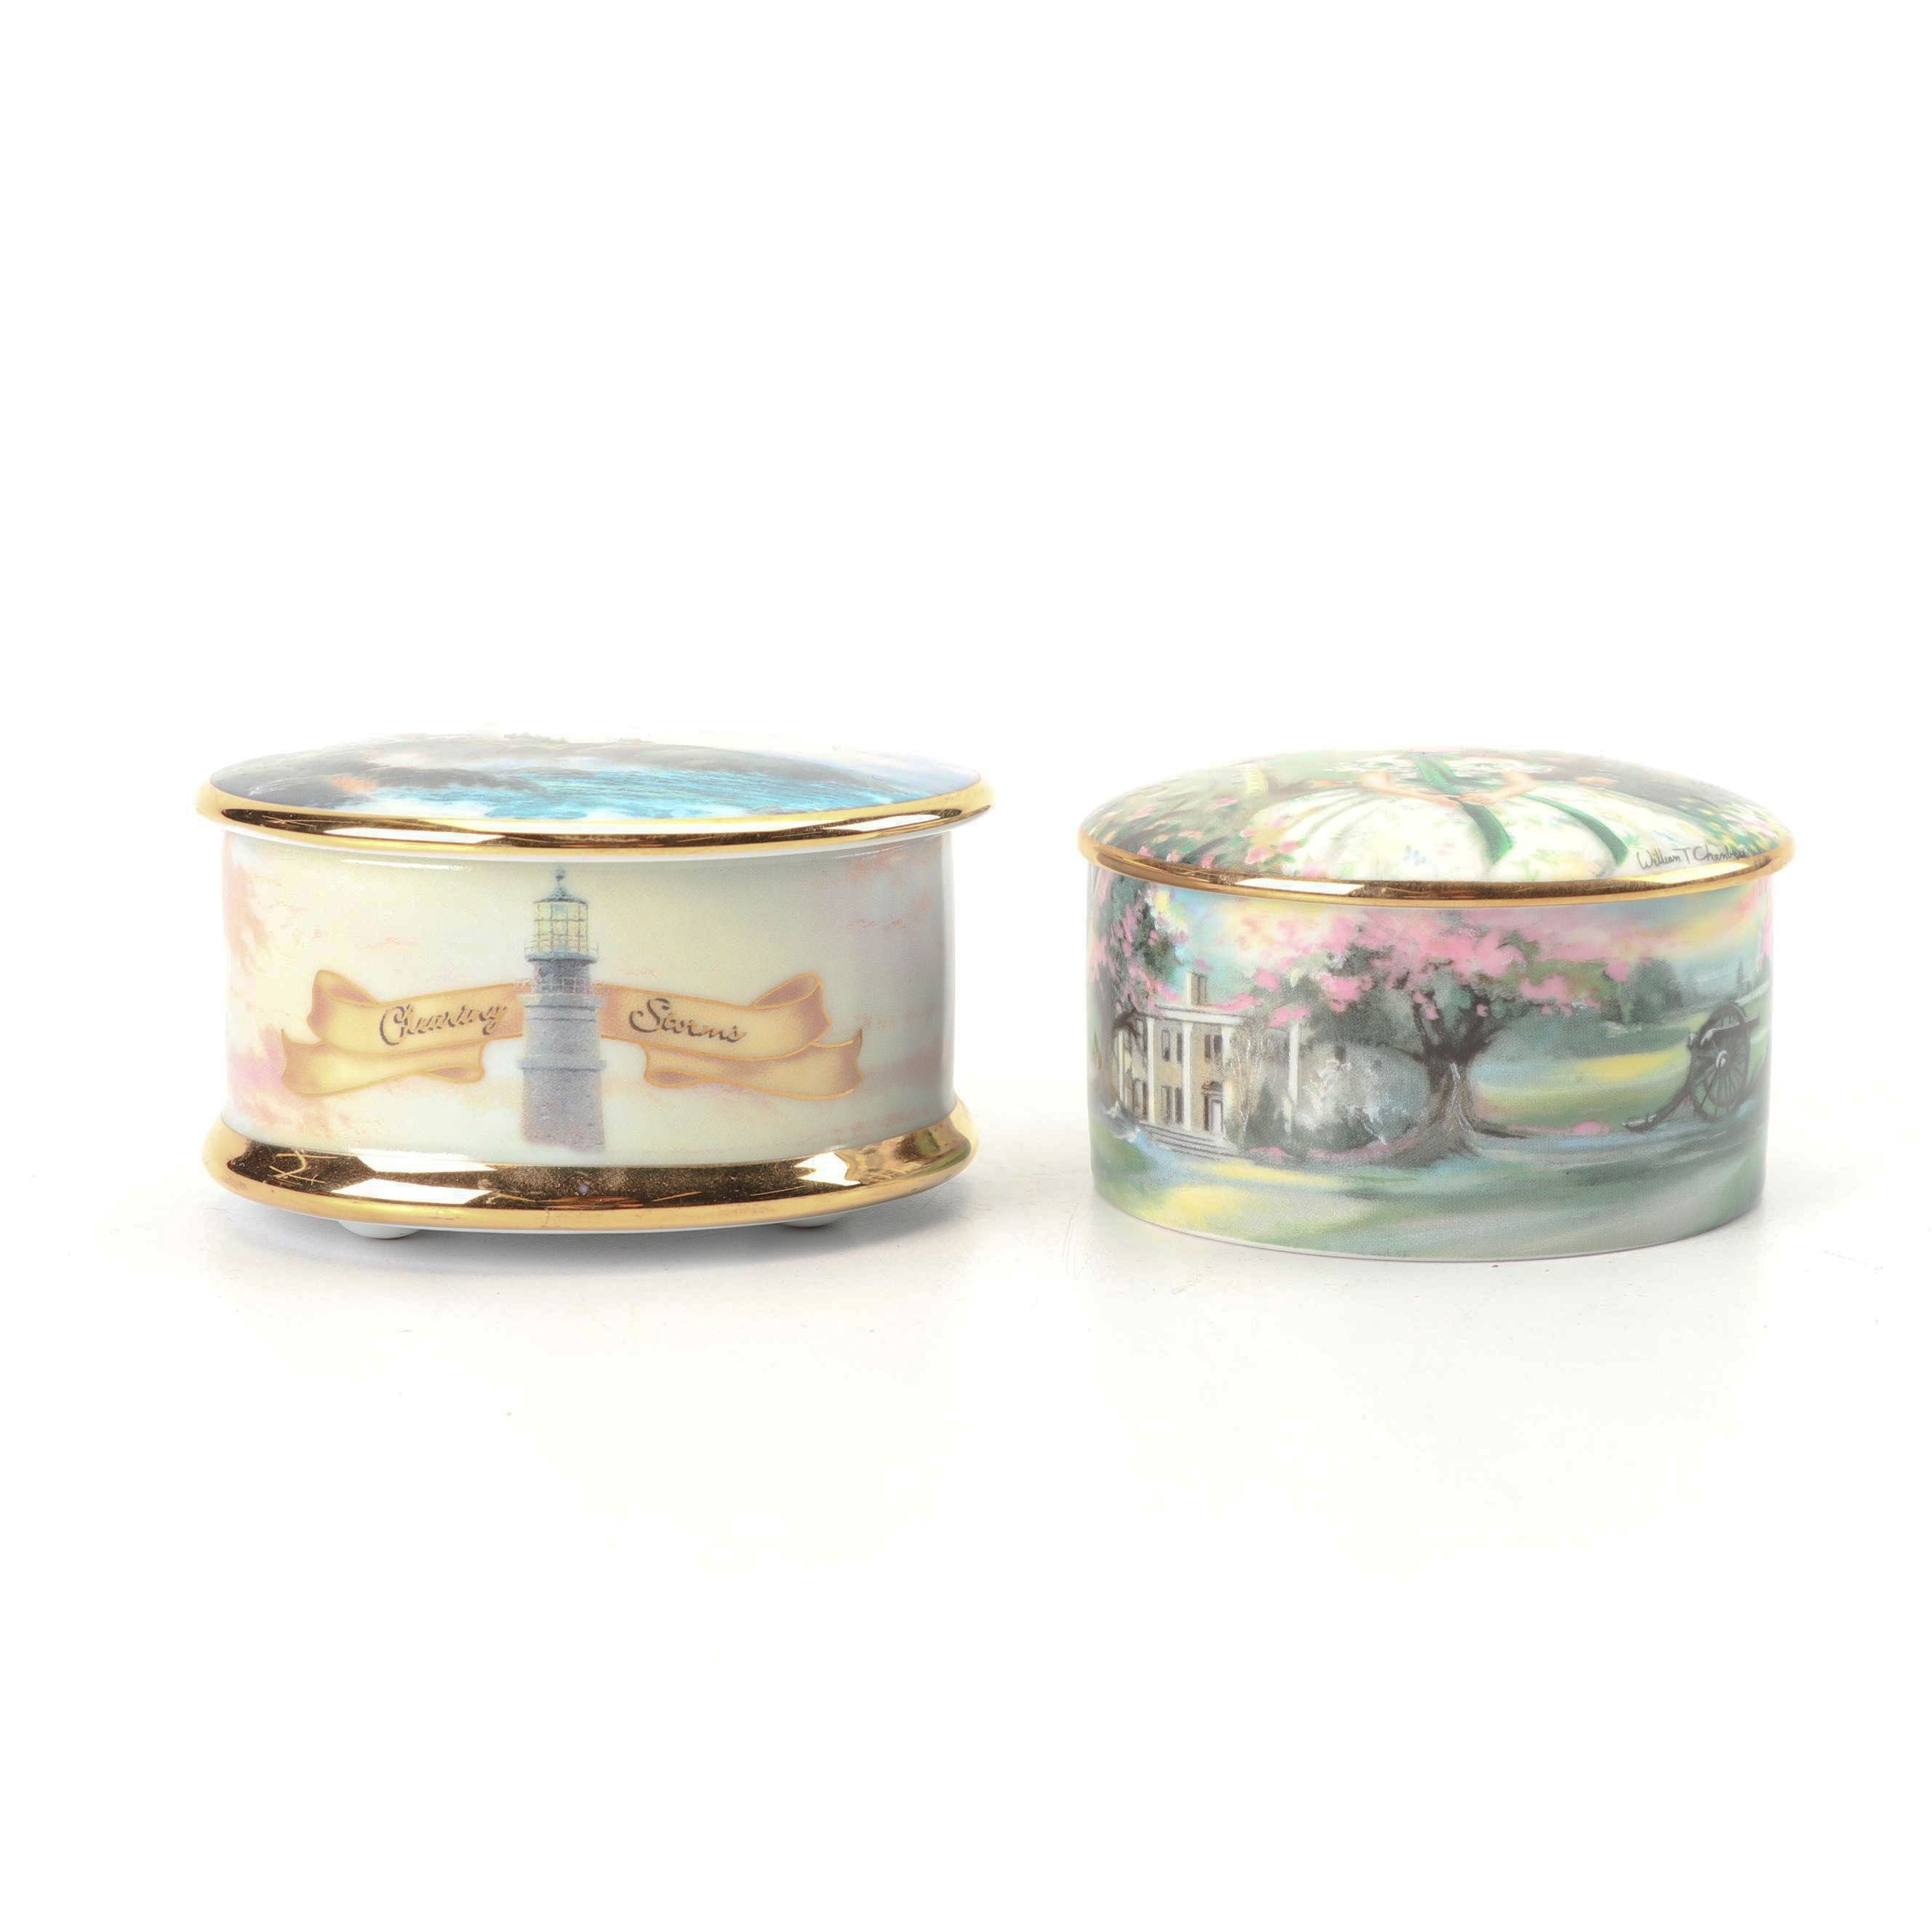 """Gone With The Wind"" and Thomas Kinkade Themed Musical Porcelain Boxes"